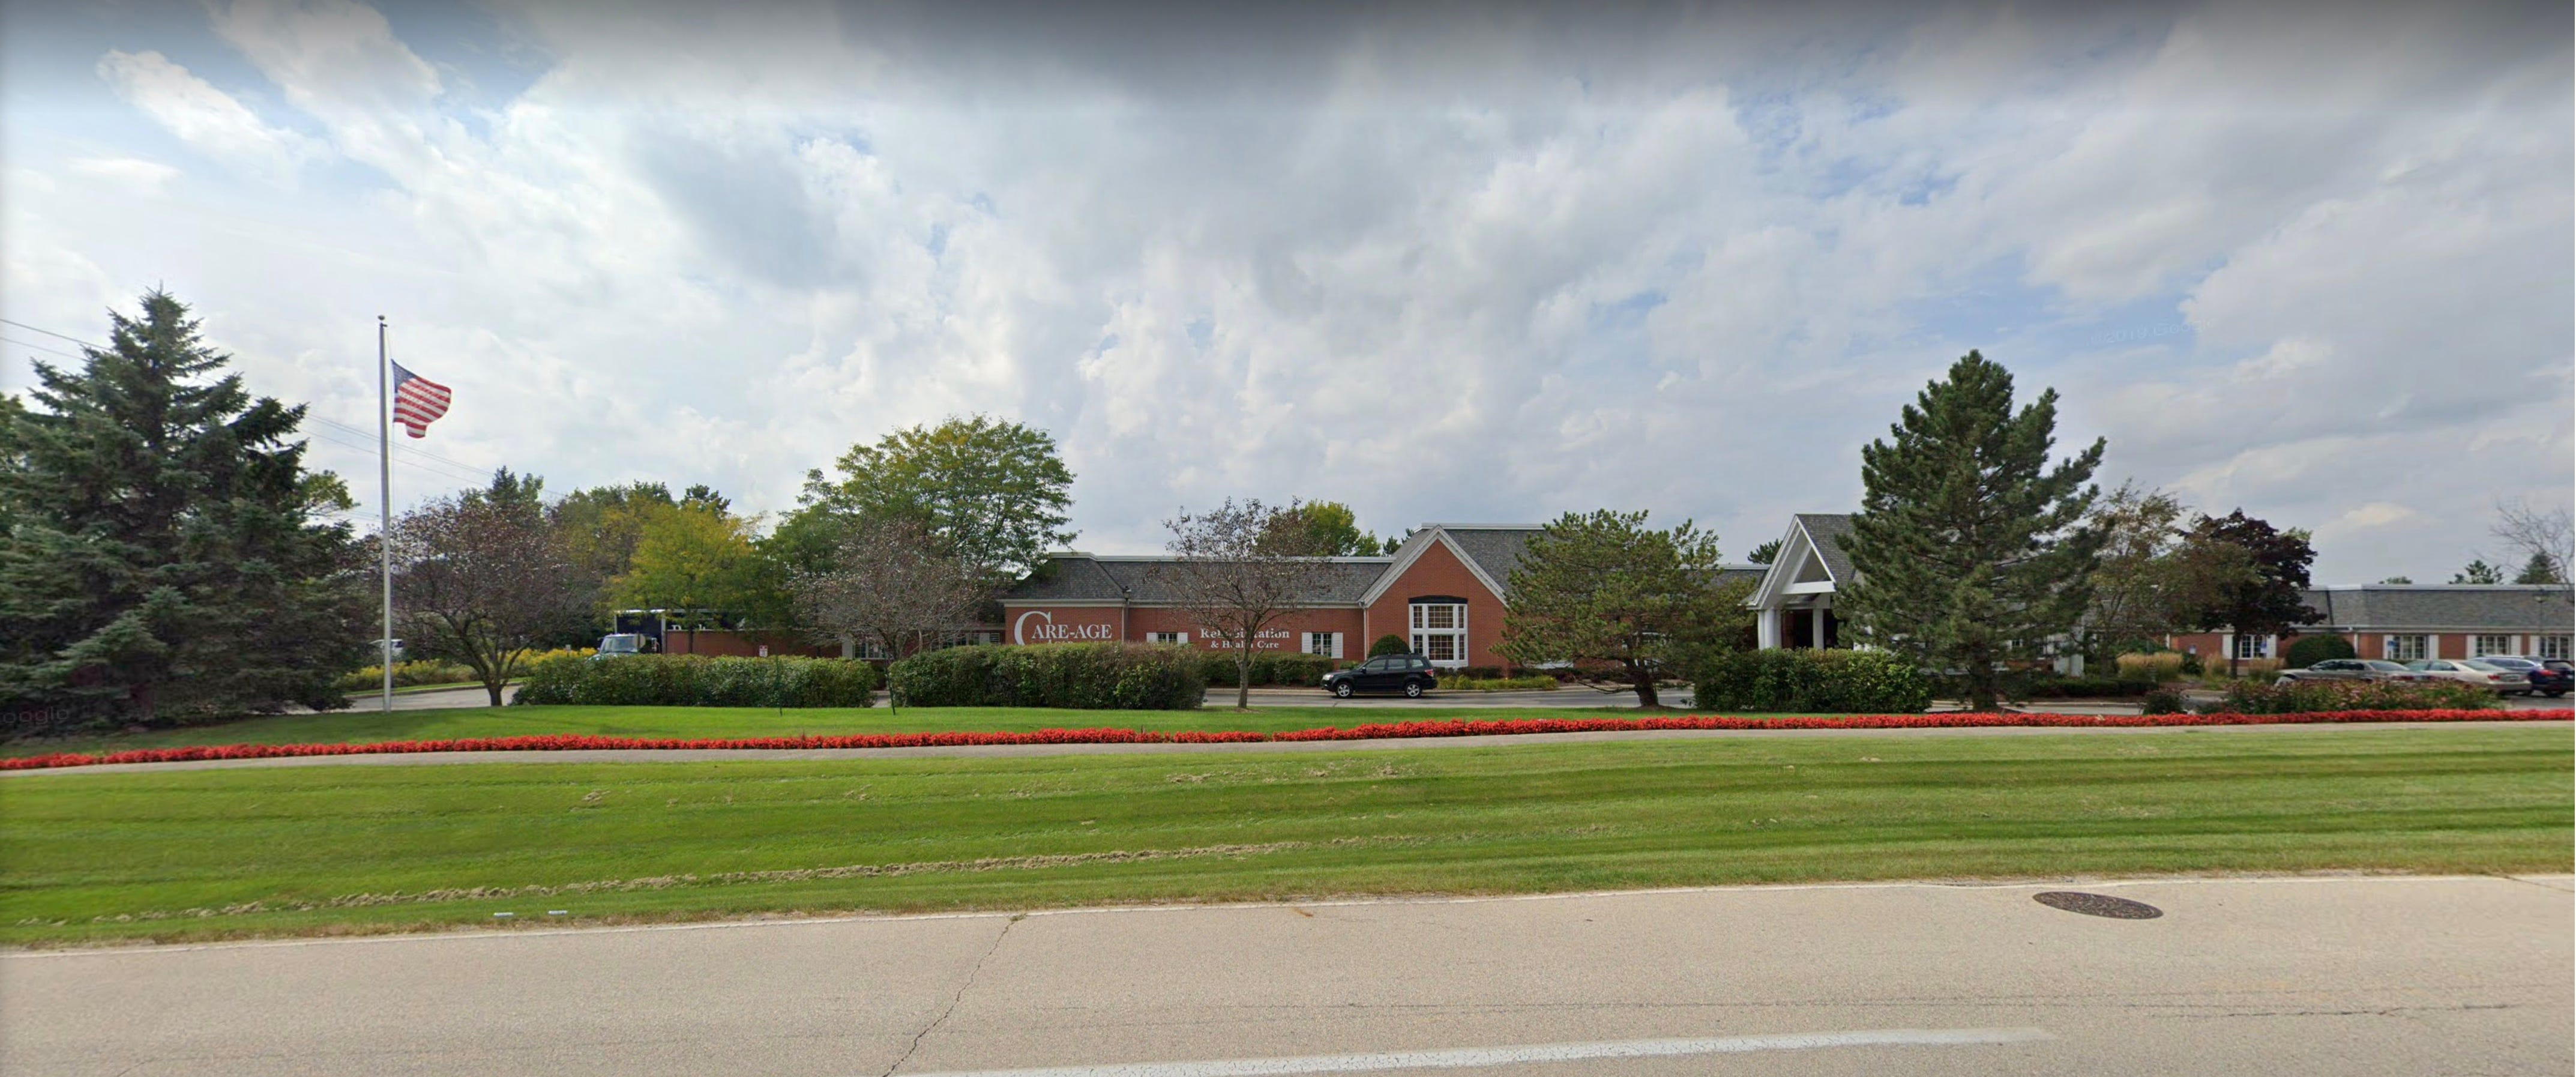 During two weeks in July at Care Age of Brookfield, 187 visitors signed in without their temperatures being checked, according to inspectors.